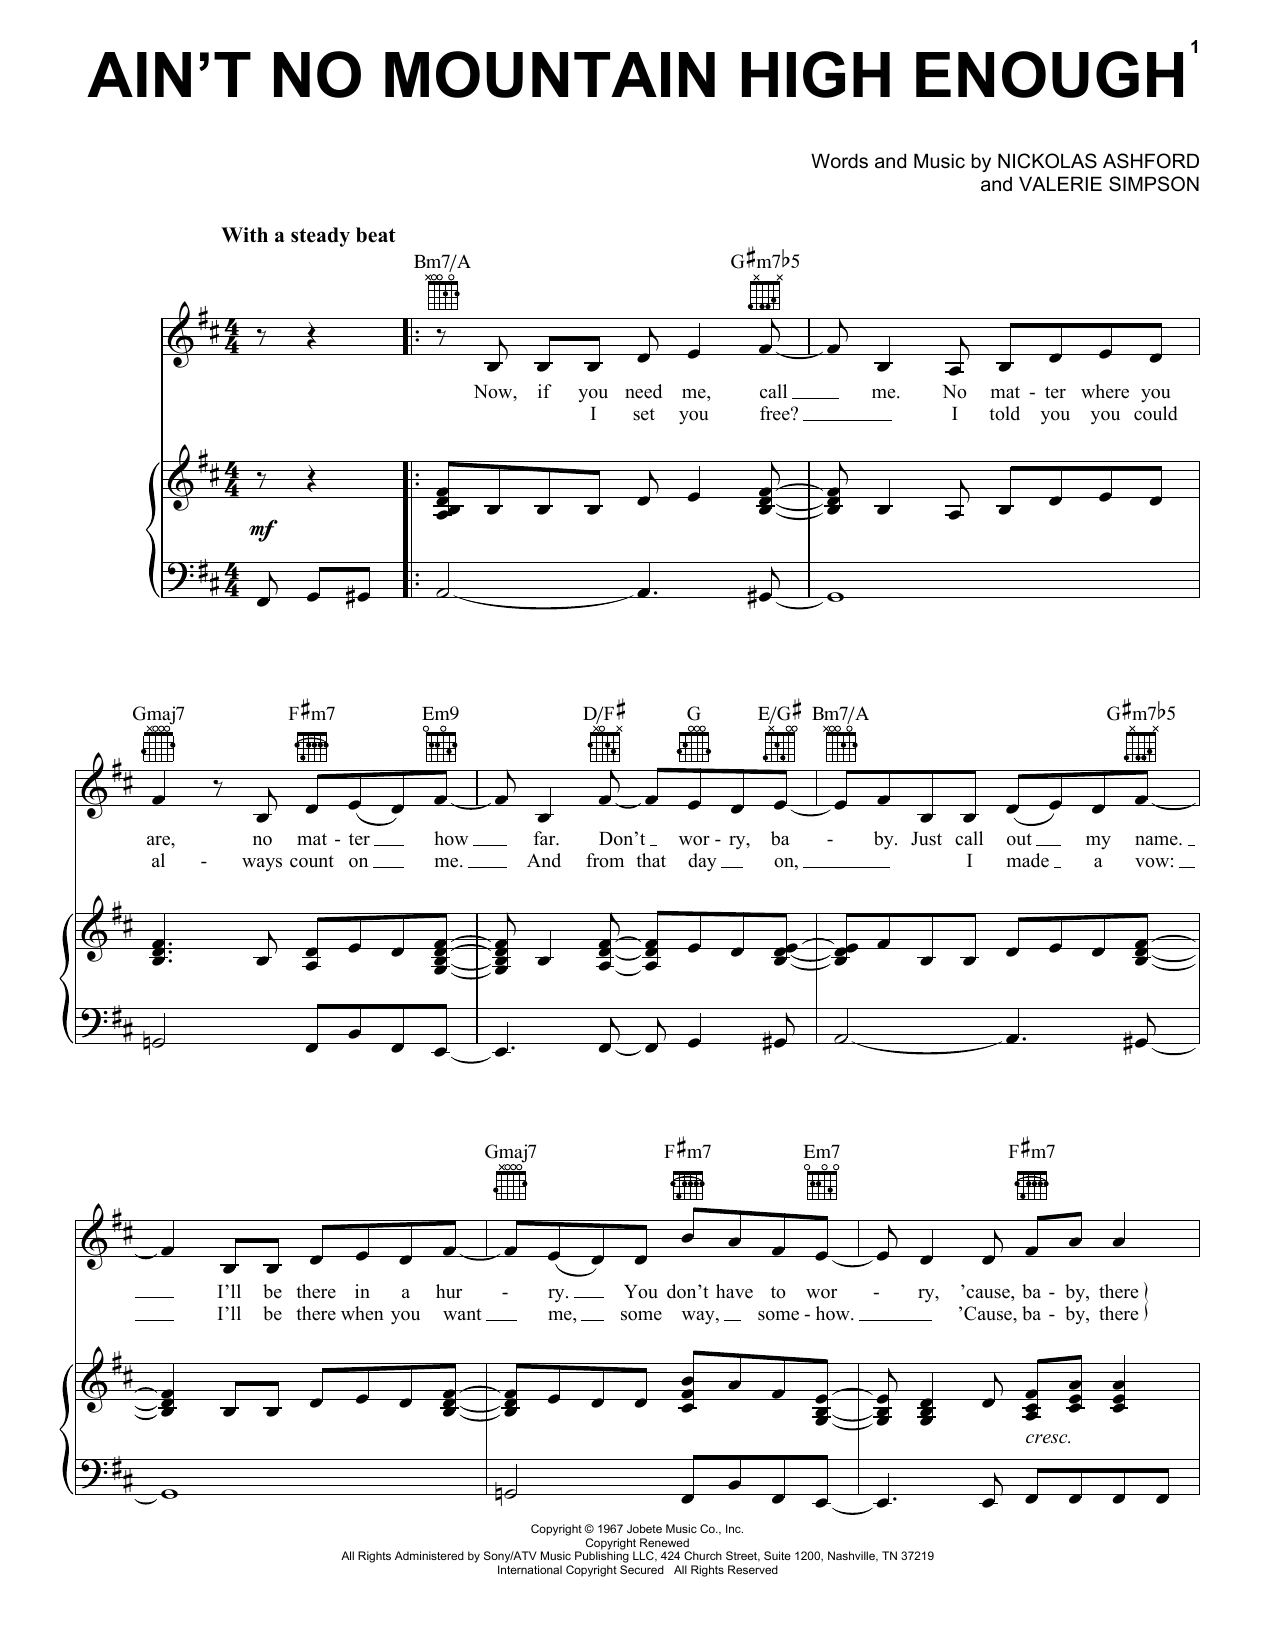 Marvin Gaye & Tammi Terrell Ain't No Mountain High Enough sheet music notes and chords. Download Printable PDF.